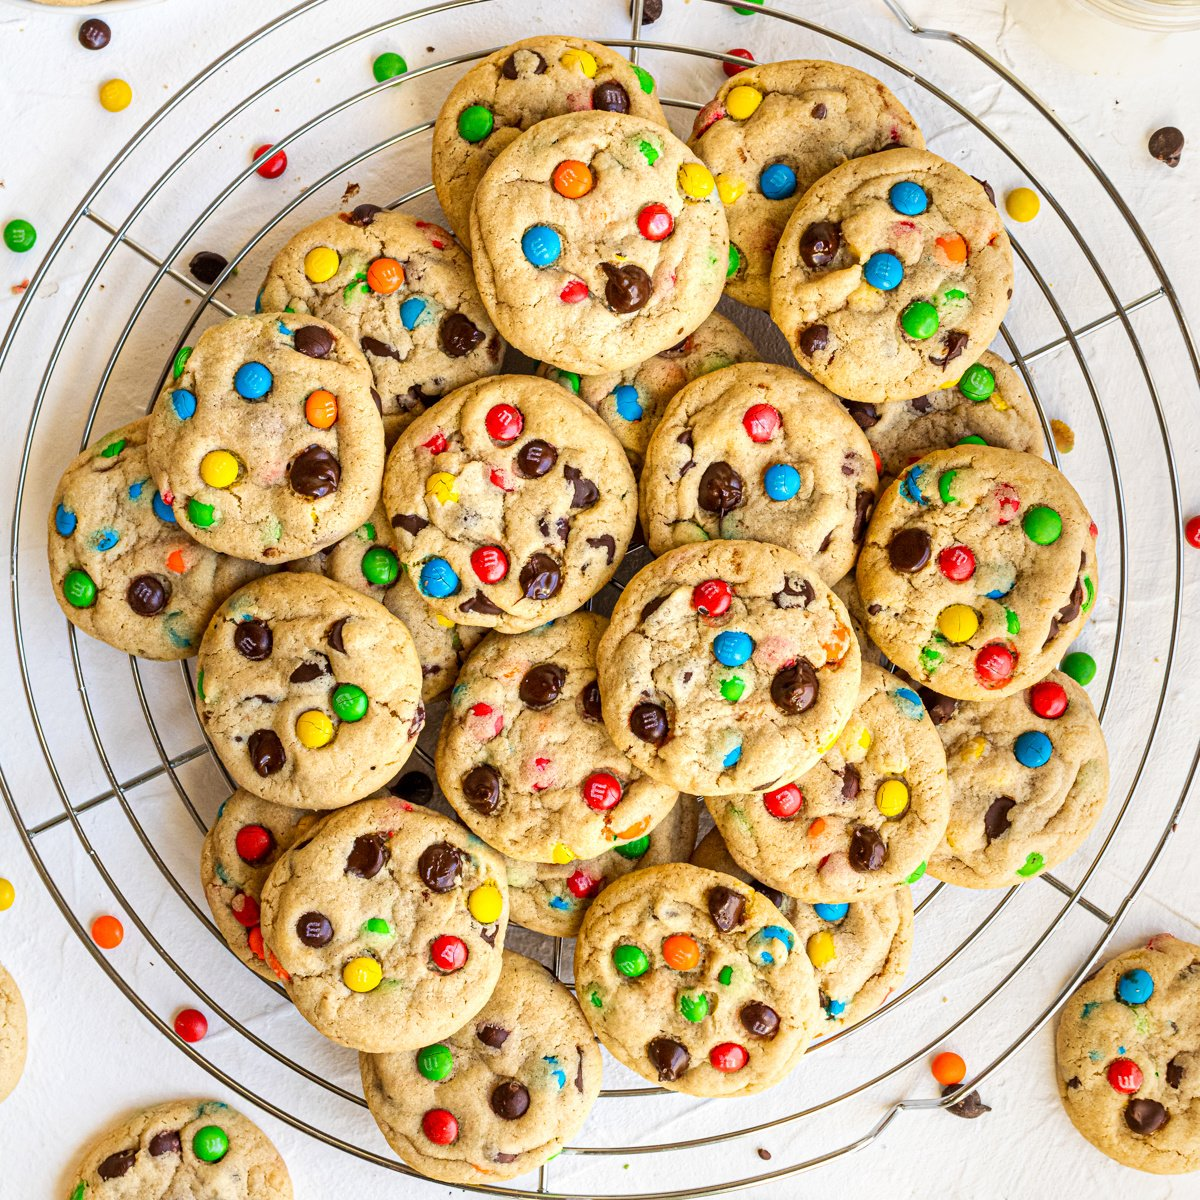 Overhead of finished cookies on round wire rack stacked square image